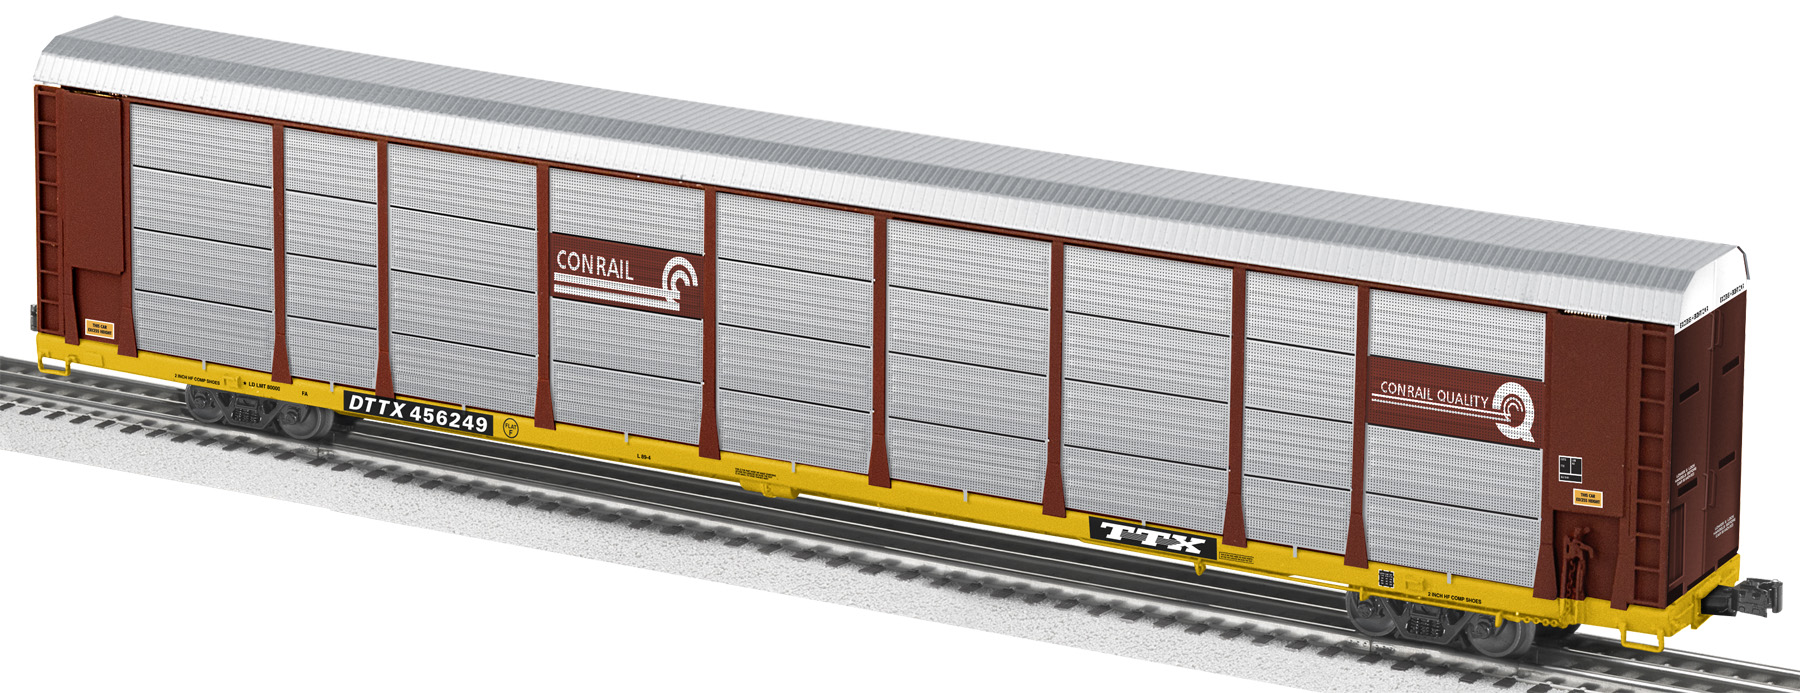 conrail lionel trains. Black Bedroom Furniture Sets. Home Design Ideas